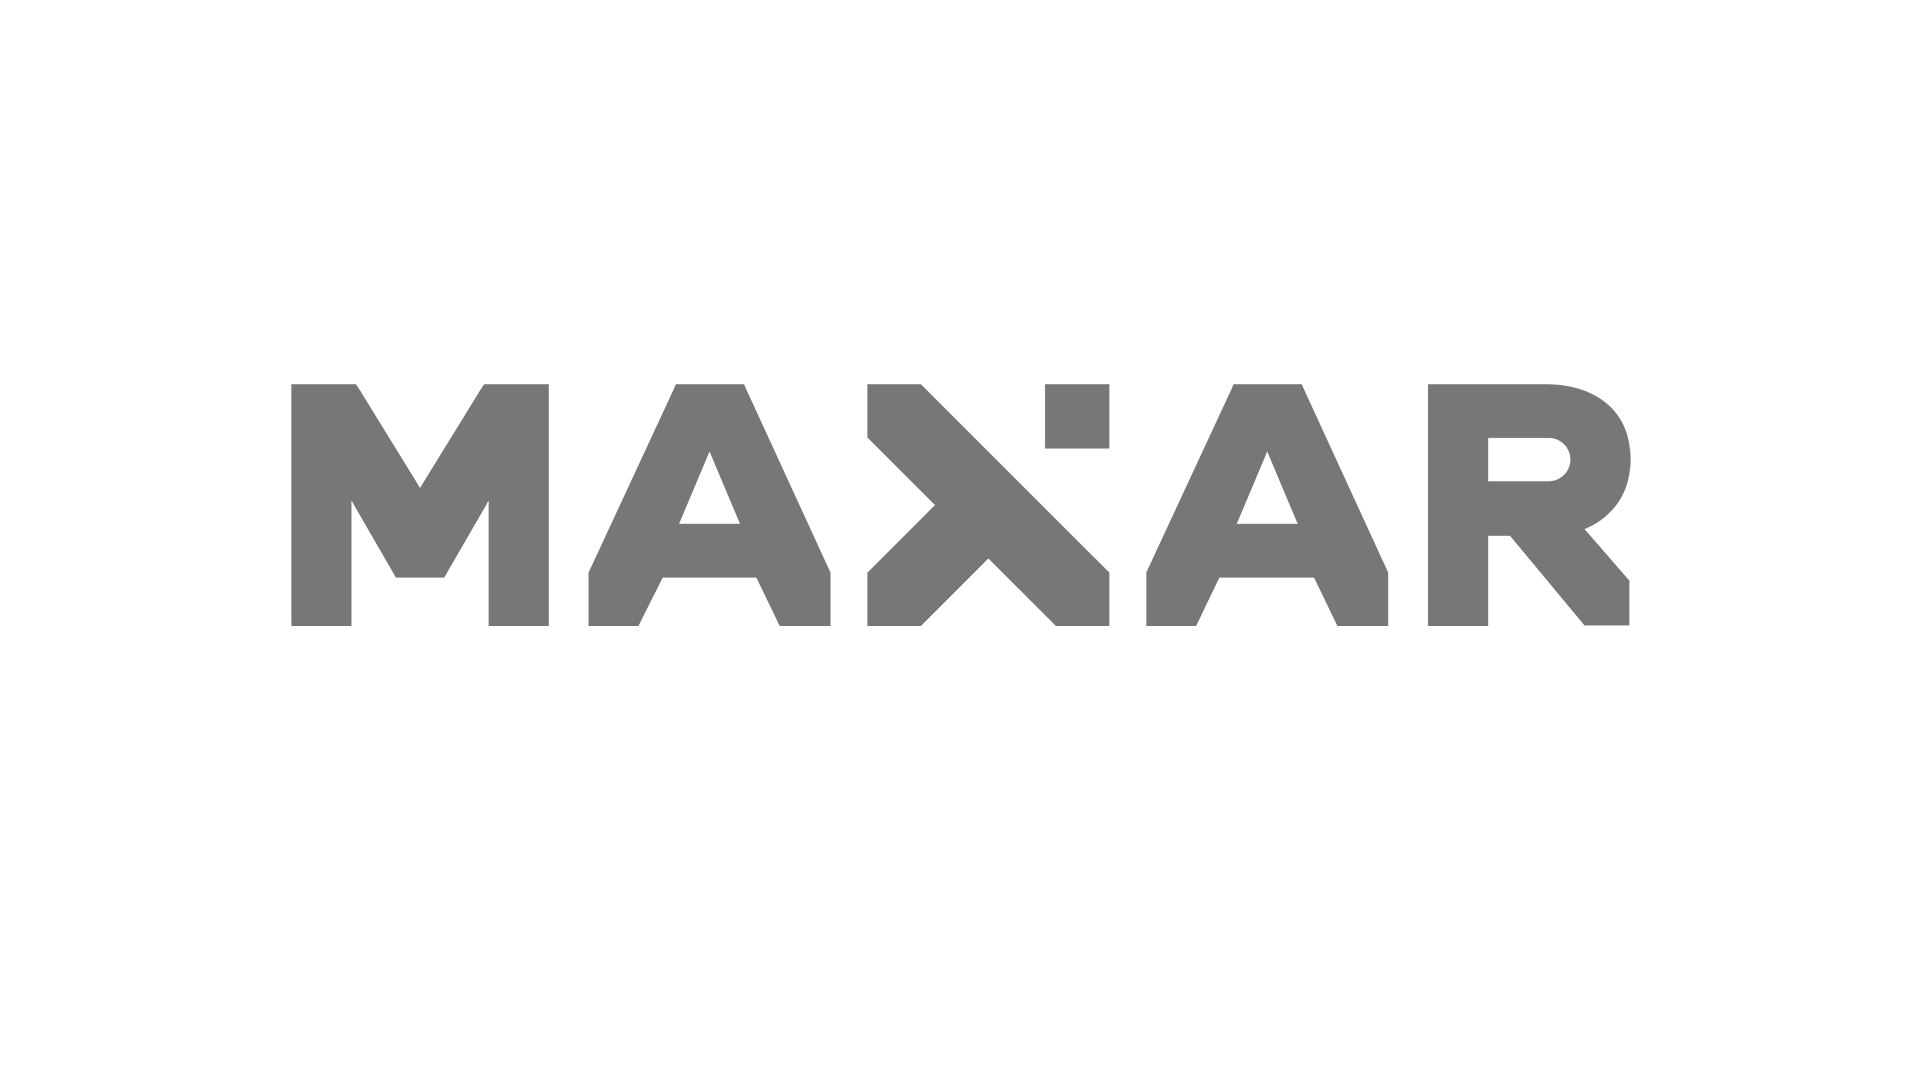 Maxar Technologies, formerly Digital Globe